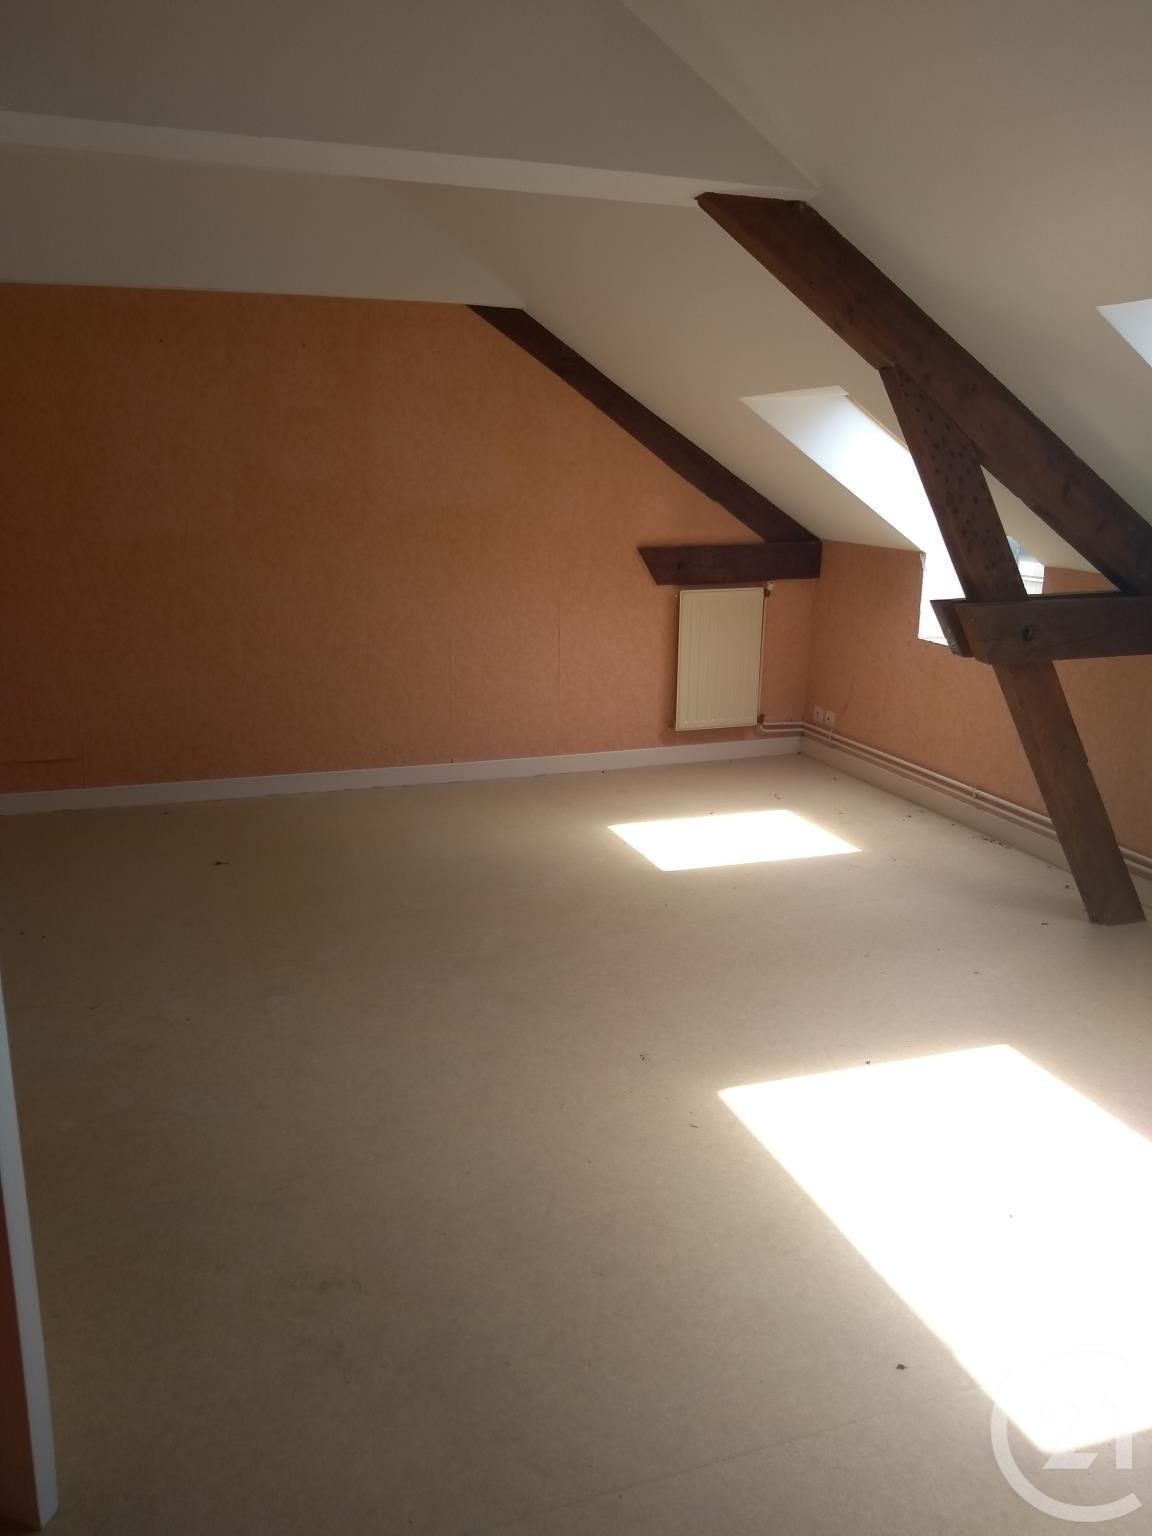 Appartement F3 à vendre - 3 pièces - 53 m2 - EPERNAY - 51 - CHAMPAGNE-ARDENNE